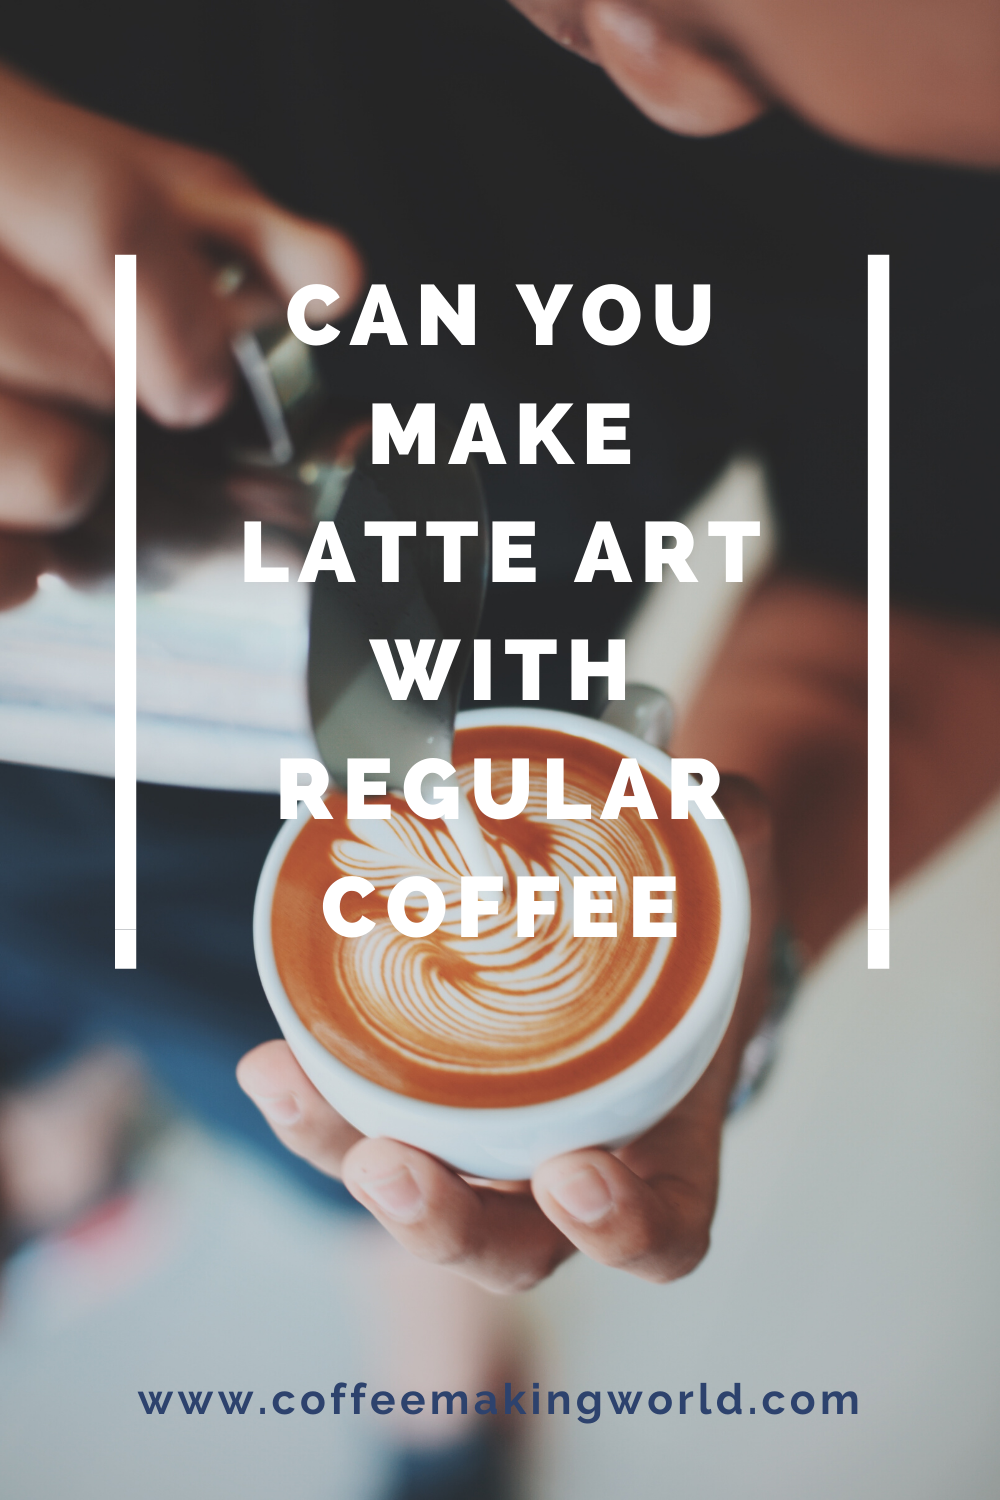 CAN YOU MAKE LATTE ART WITH REGULAR COFFEE in 2020 | Latte ...